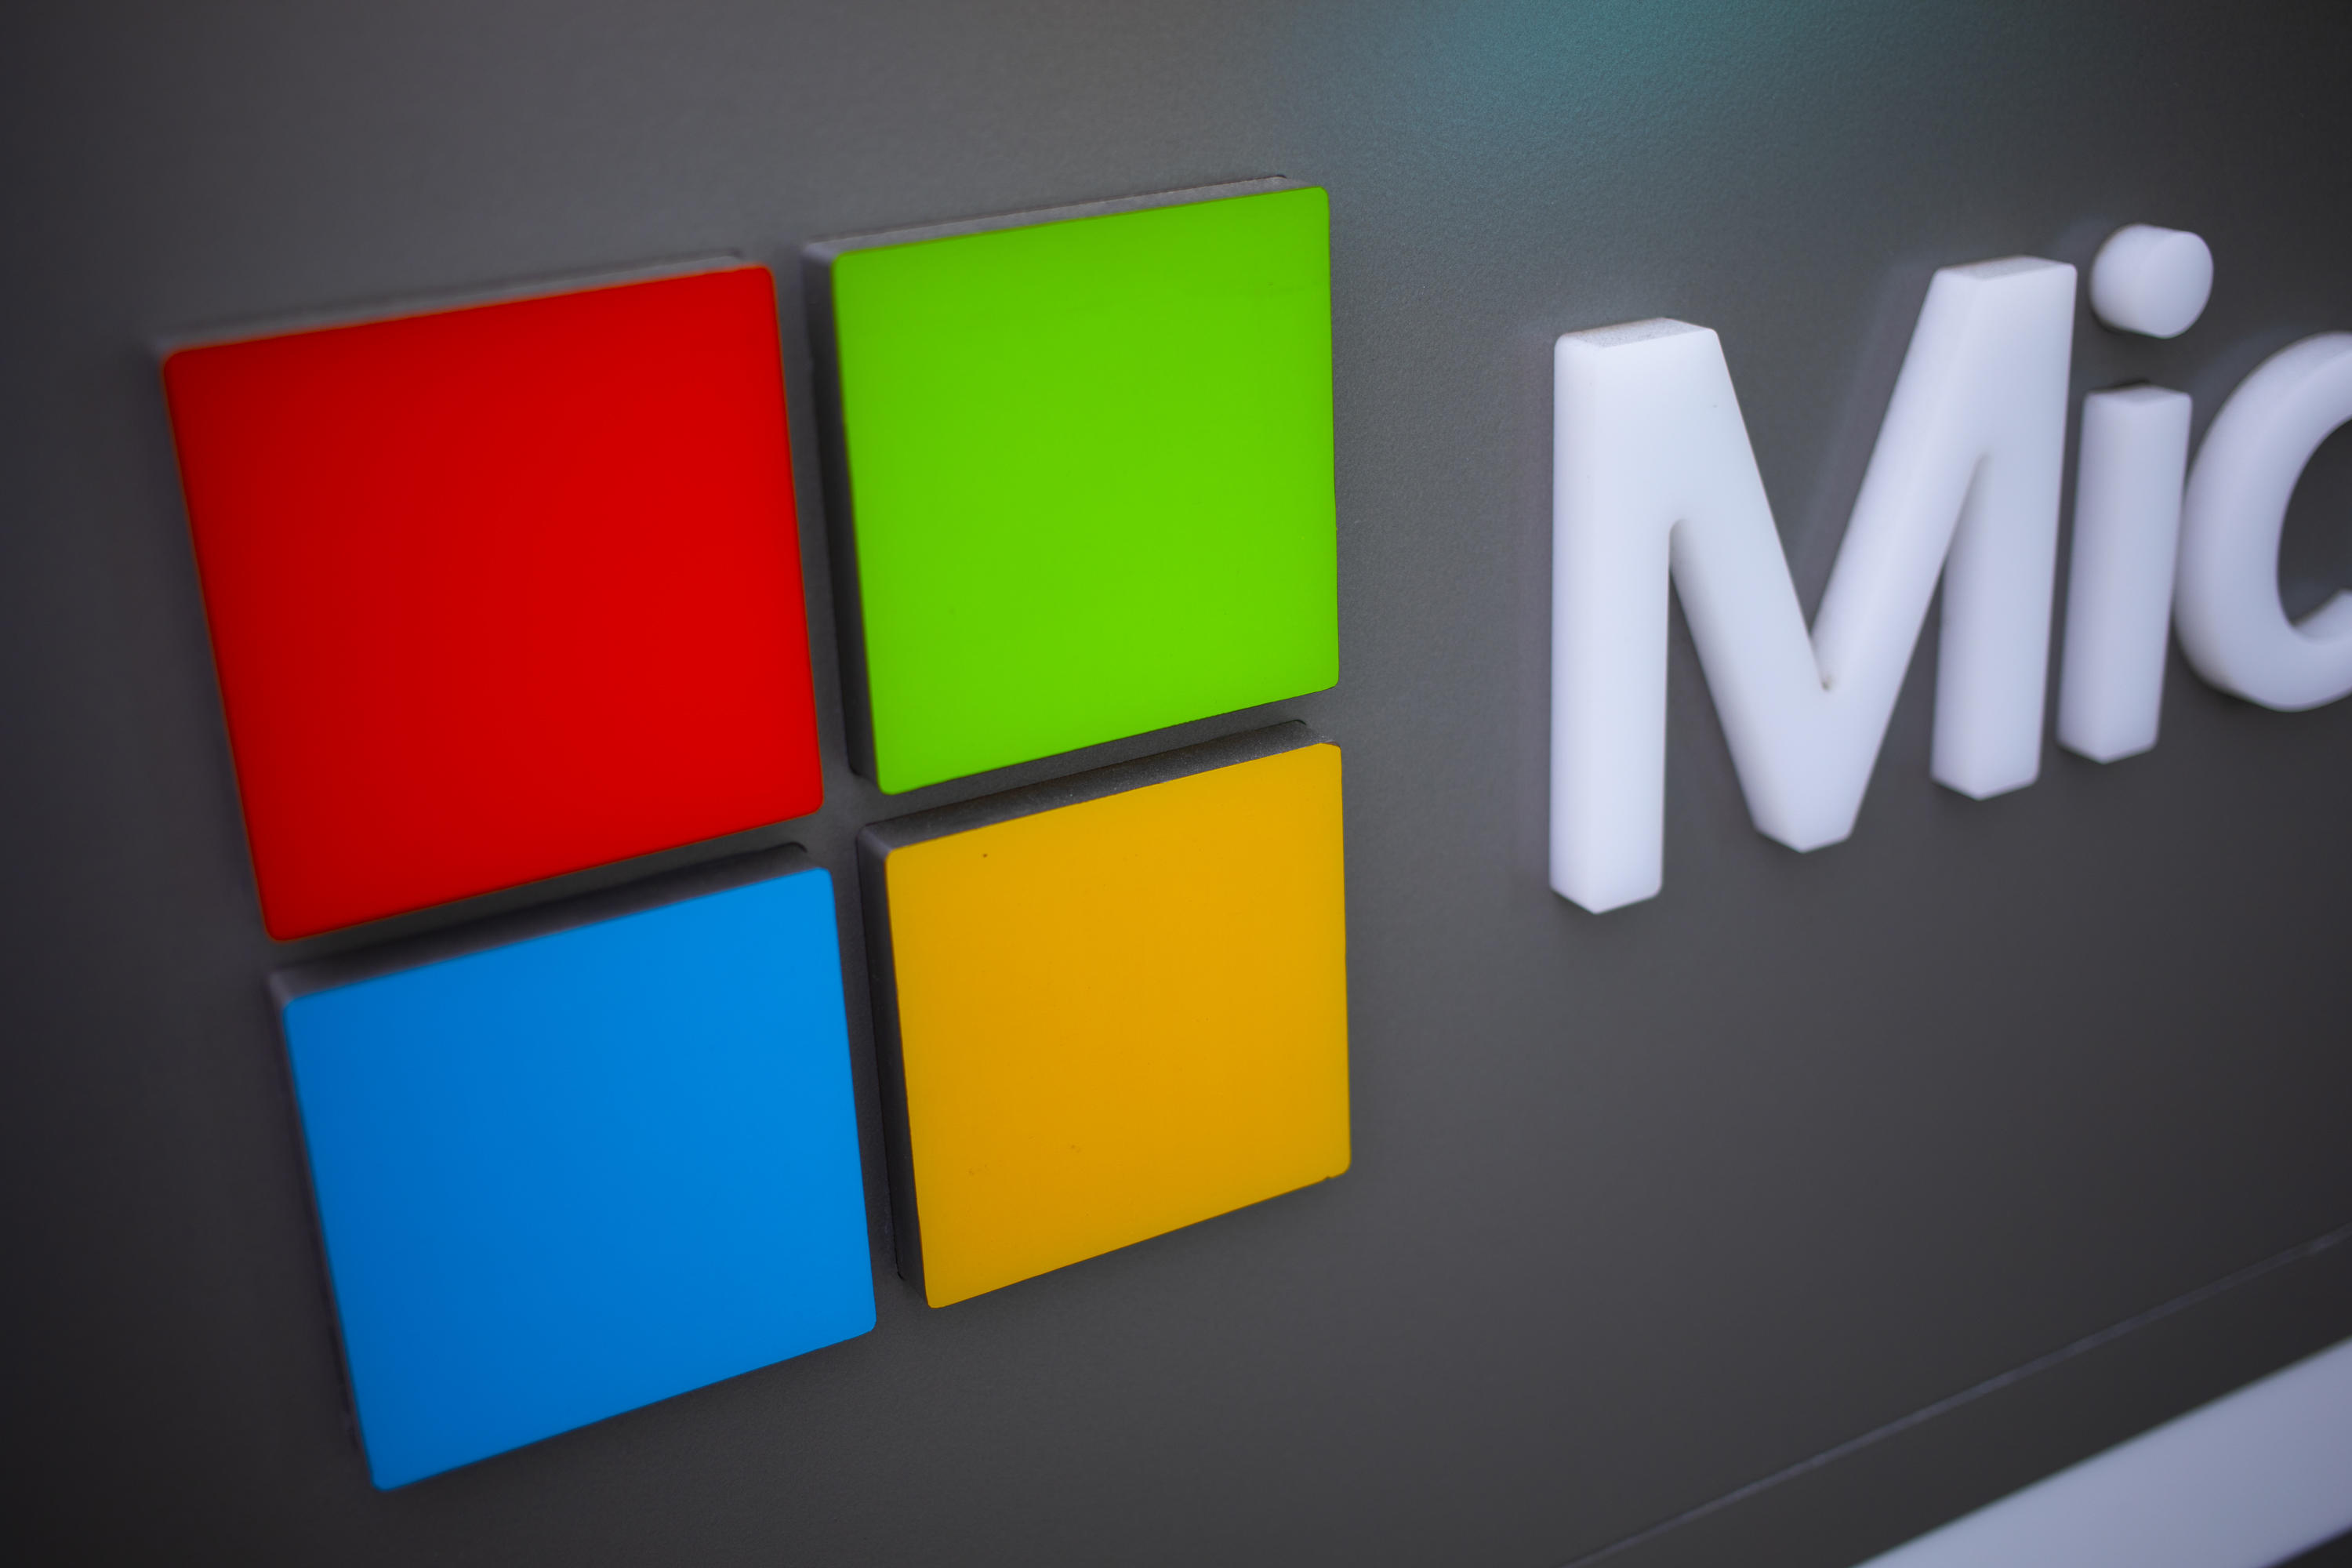 Microsoft will require vaccination proof to enter its facilities     - CNET